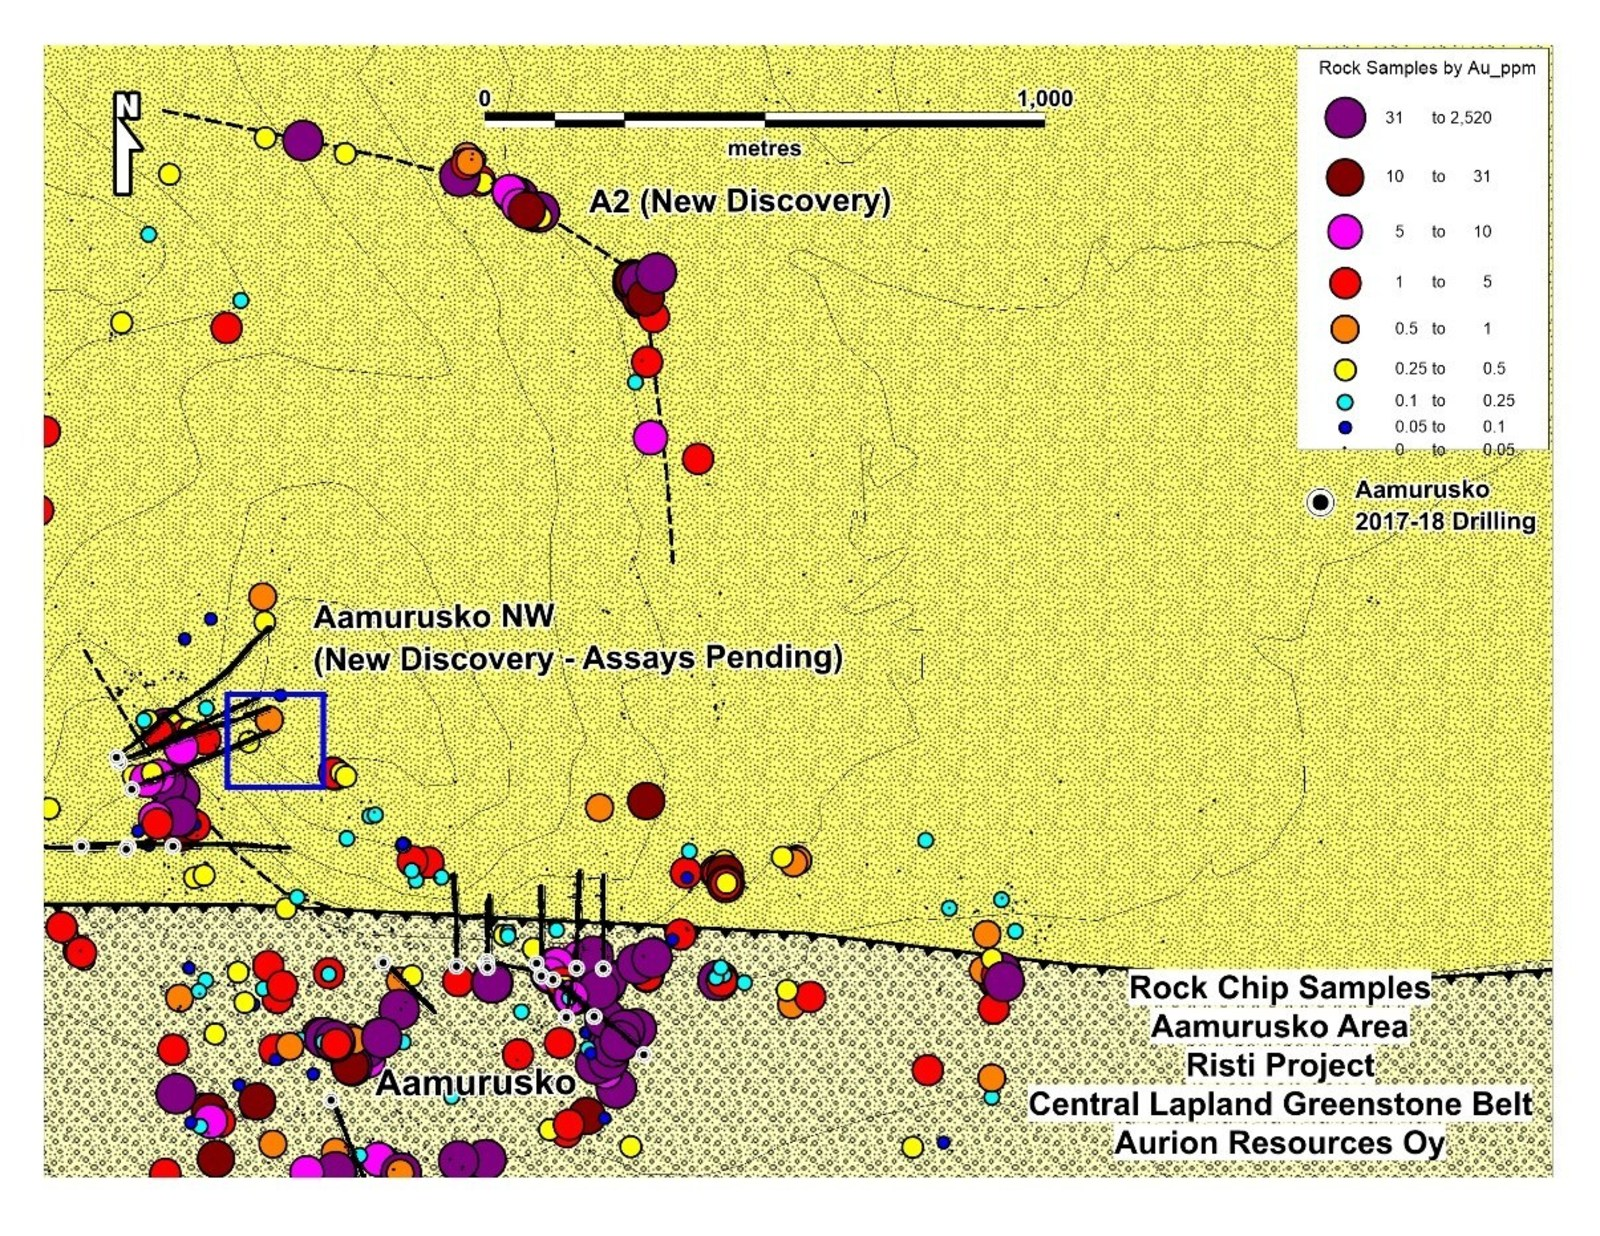 Figure 2: Two new high grade discoveries at Aurion's Risti Project